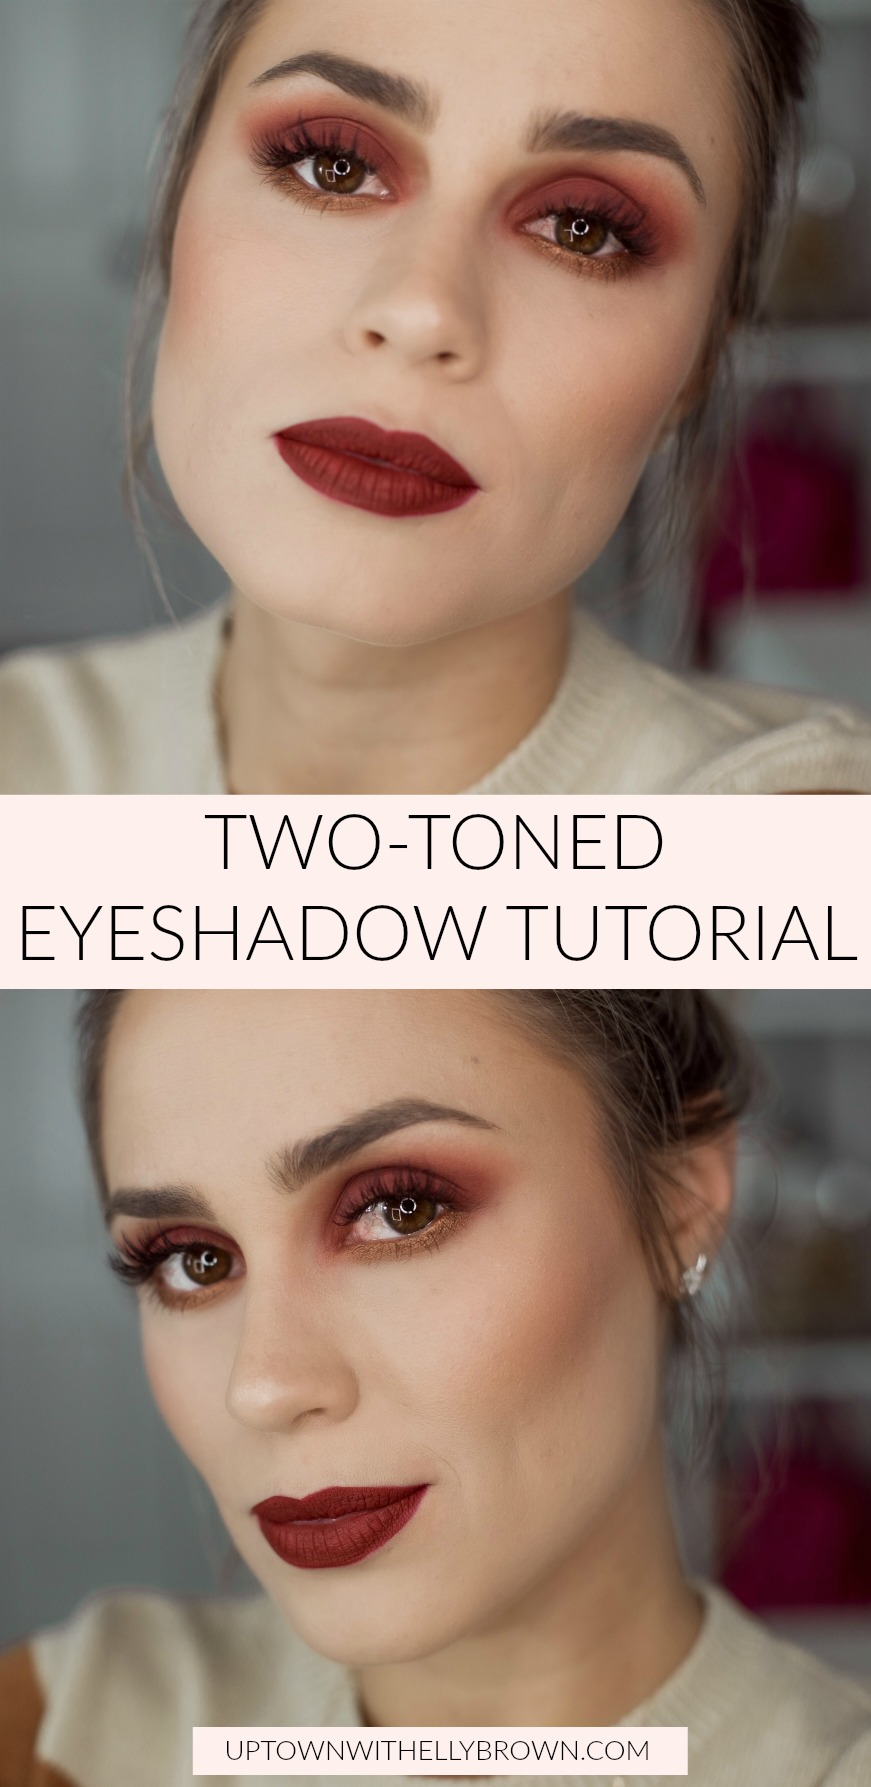 Houston Beauty blogger Uptown with Elly Brown shares a Two-Toned Eyeshadow Tutorial and how easy it is to achieve this look